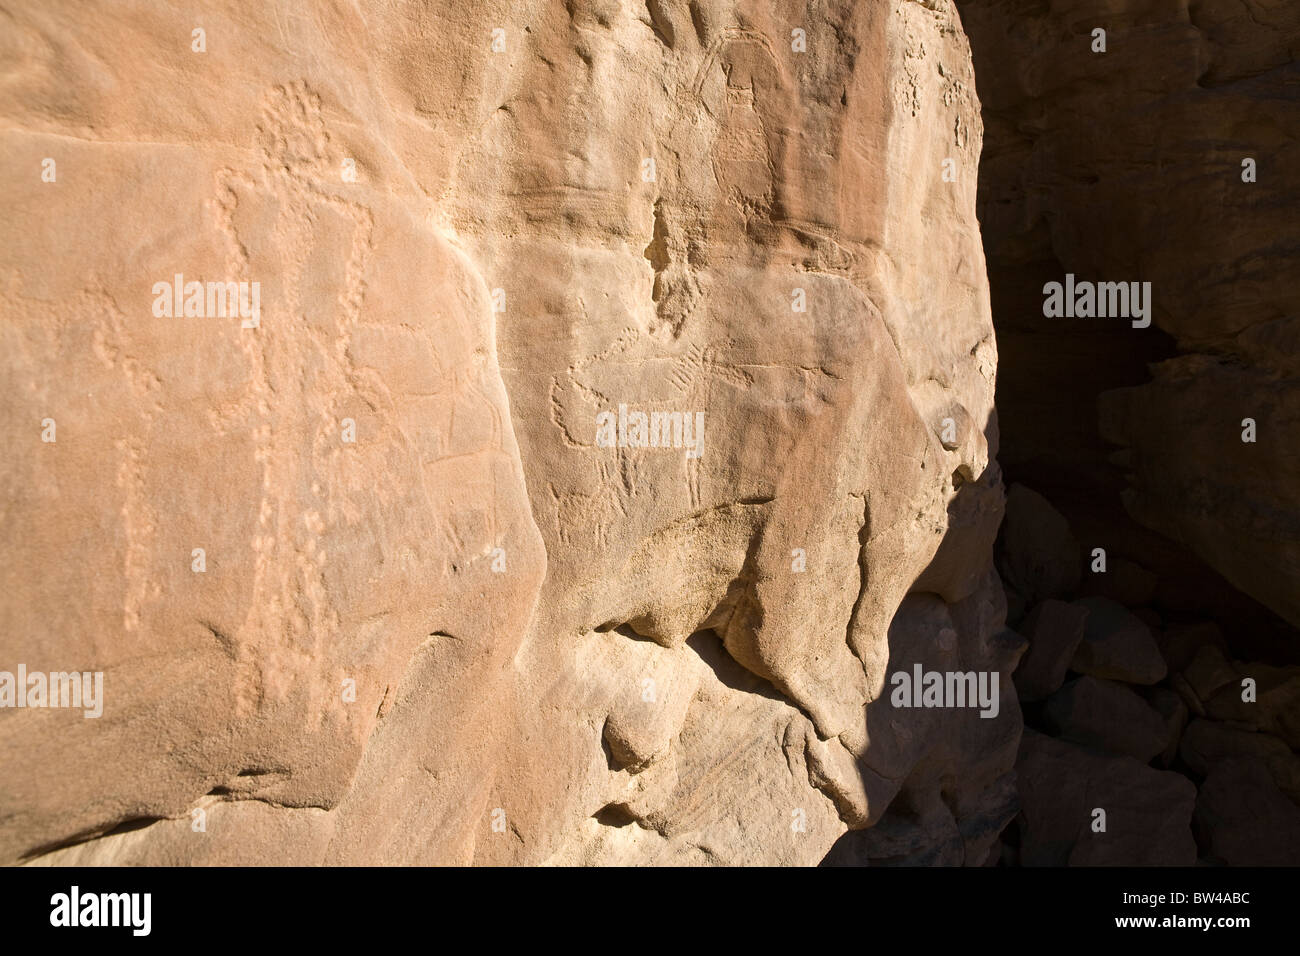 Petroglyph of man with bow on rock-face in Eastern Desert of Egypt - Stock Image